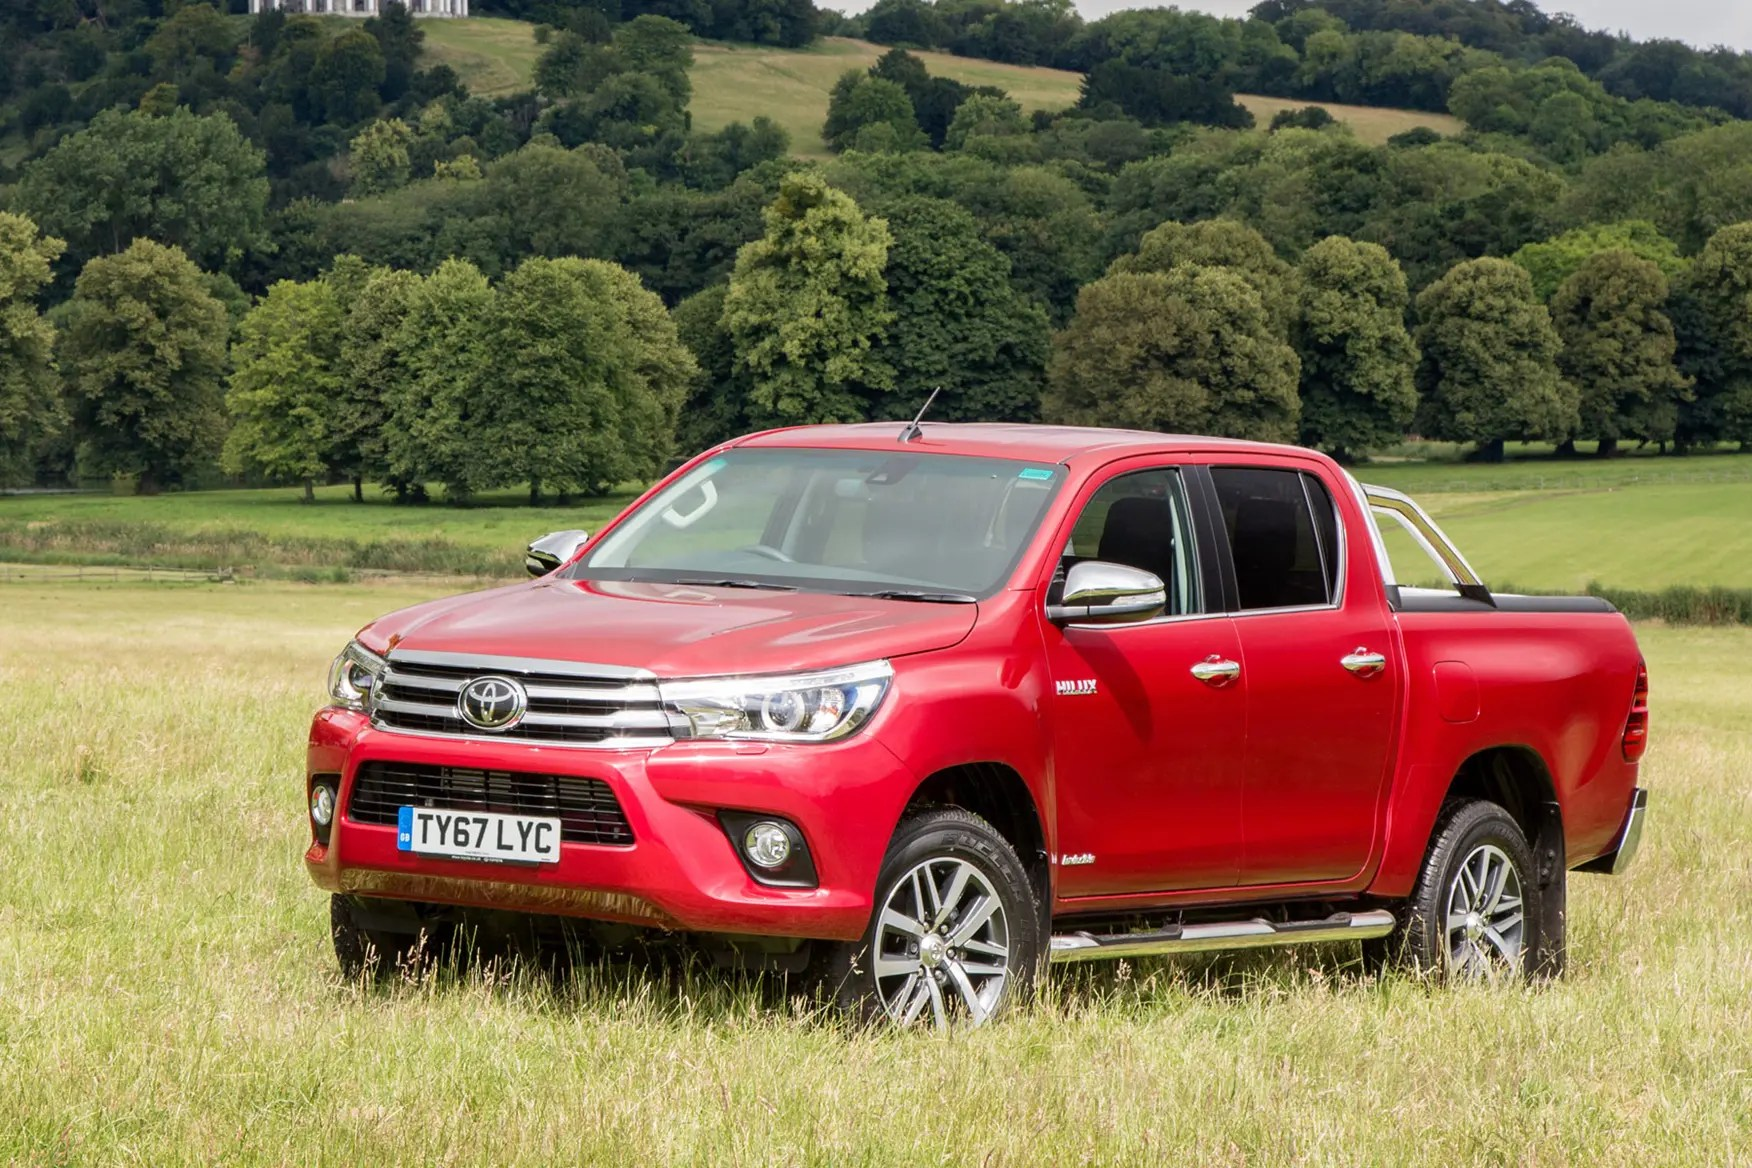 Vauxhall Partners List Of Companies Top 10 Most Reliable Vans And Pickups Parkers